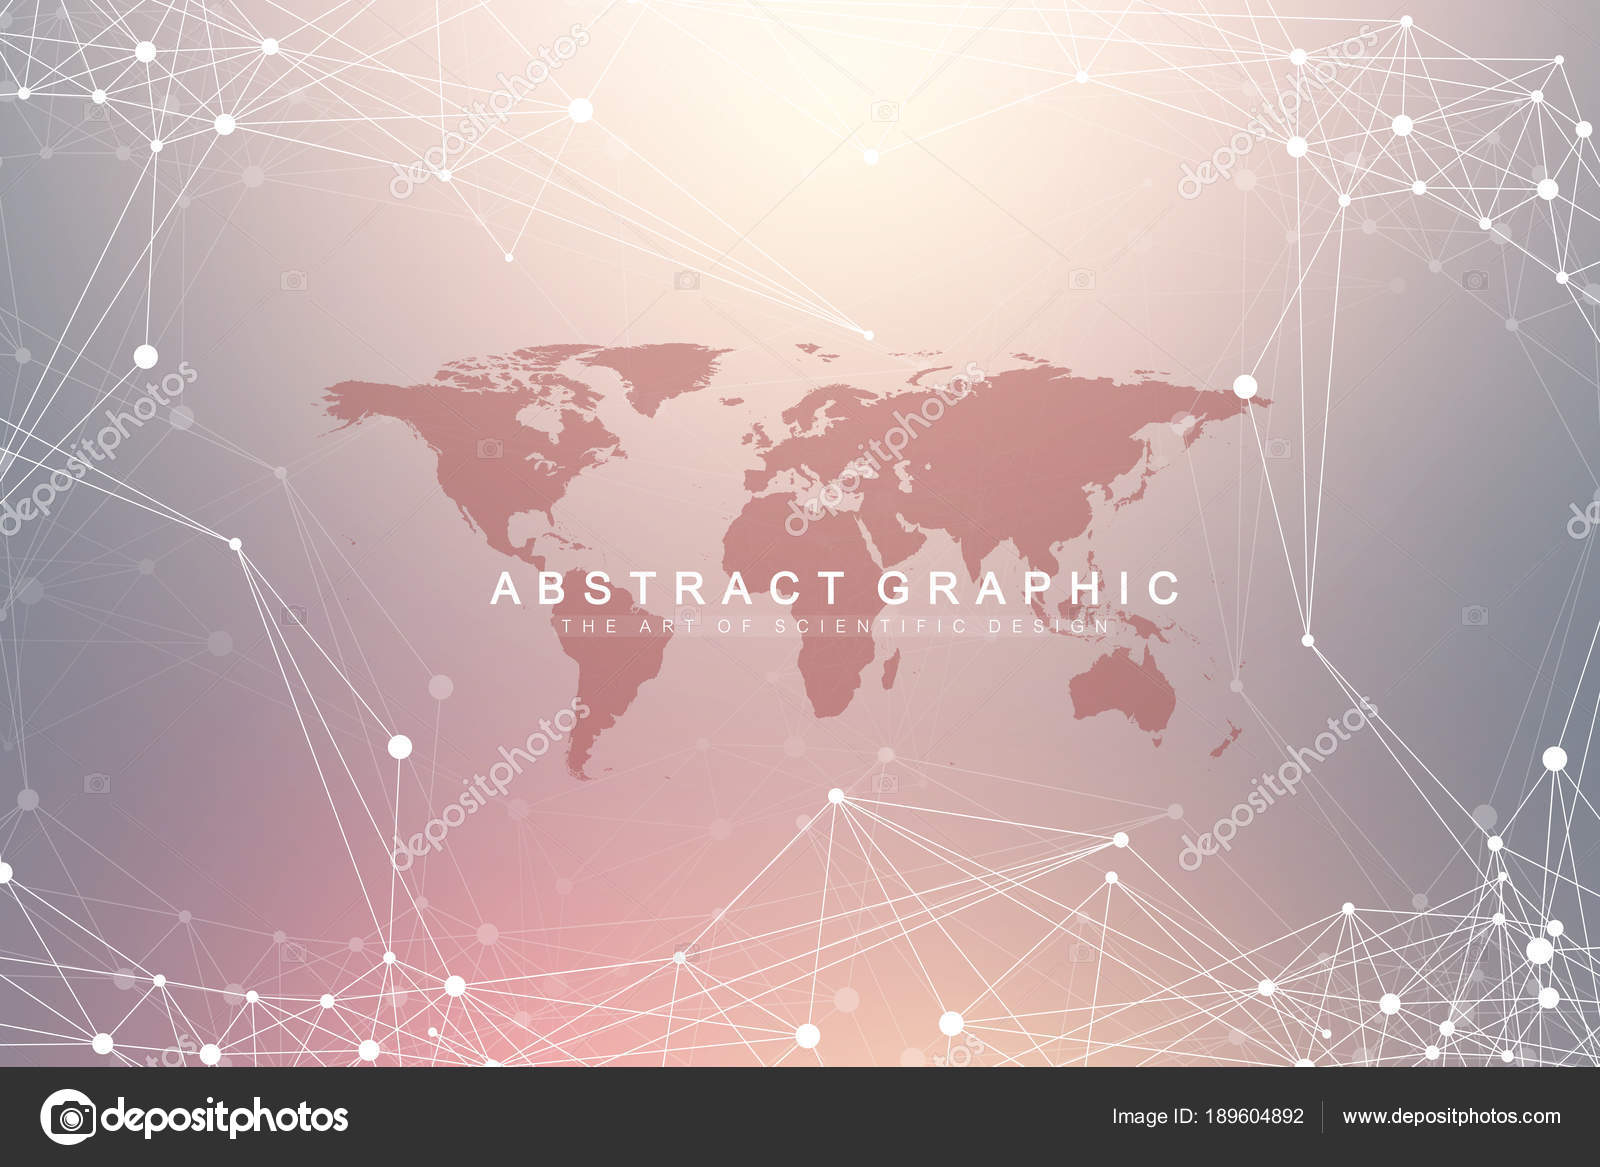 Geometric graphic background communication with world map big data geometric graphic background communication with world map big data complex with compounds perspective backdrop gumiabroncs Images